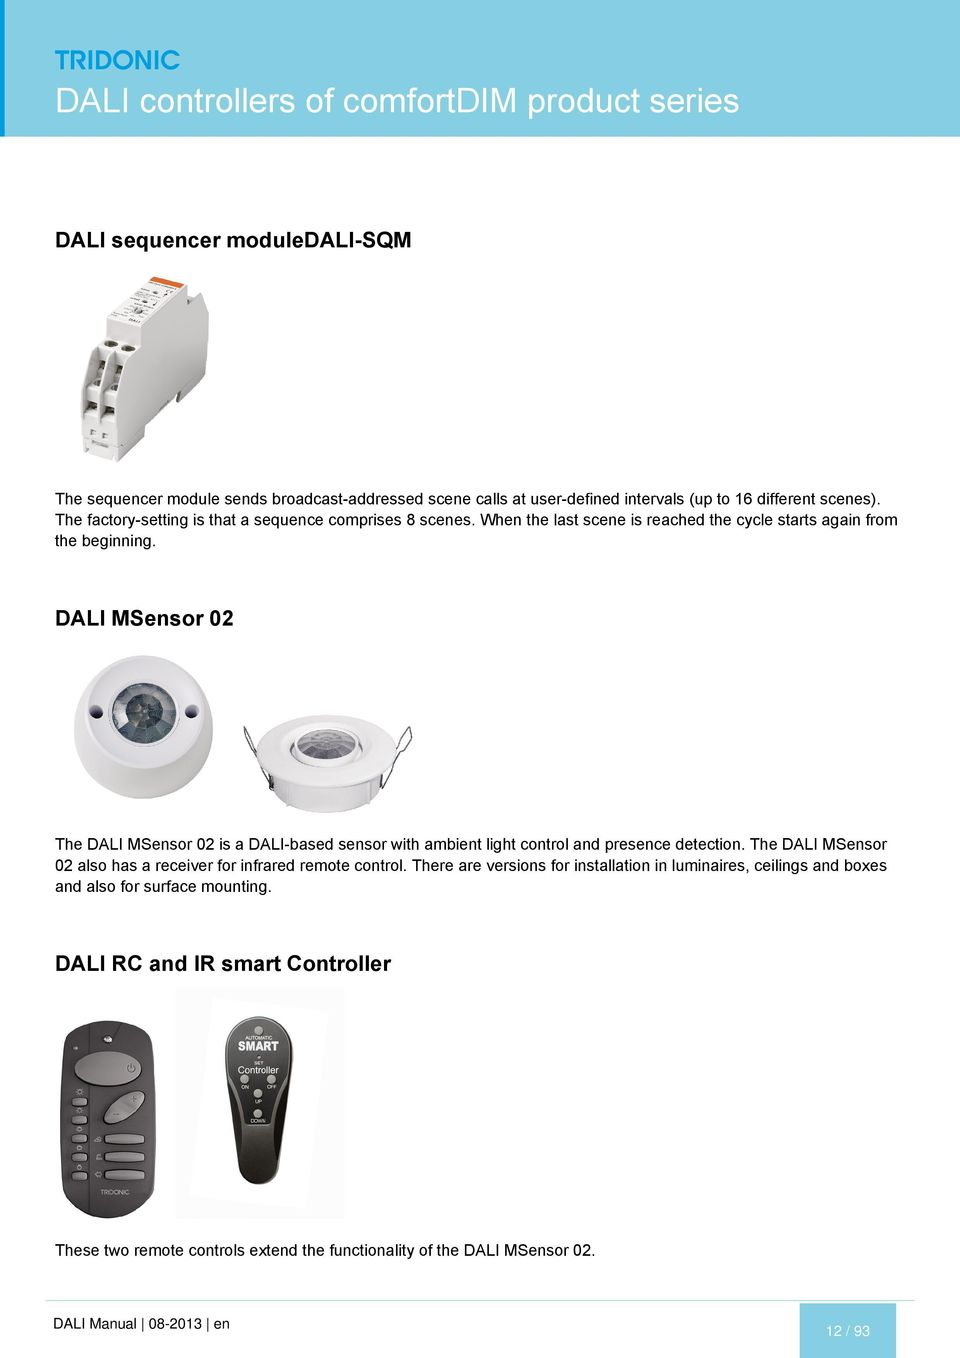 Luxcontrol Dali Manual Pdf Wiring Diagram Msensor 02 The Is A Based Sensor With Ambient Light